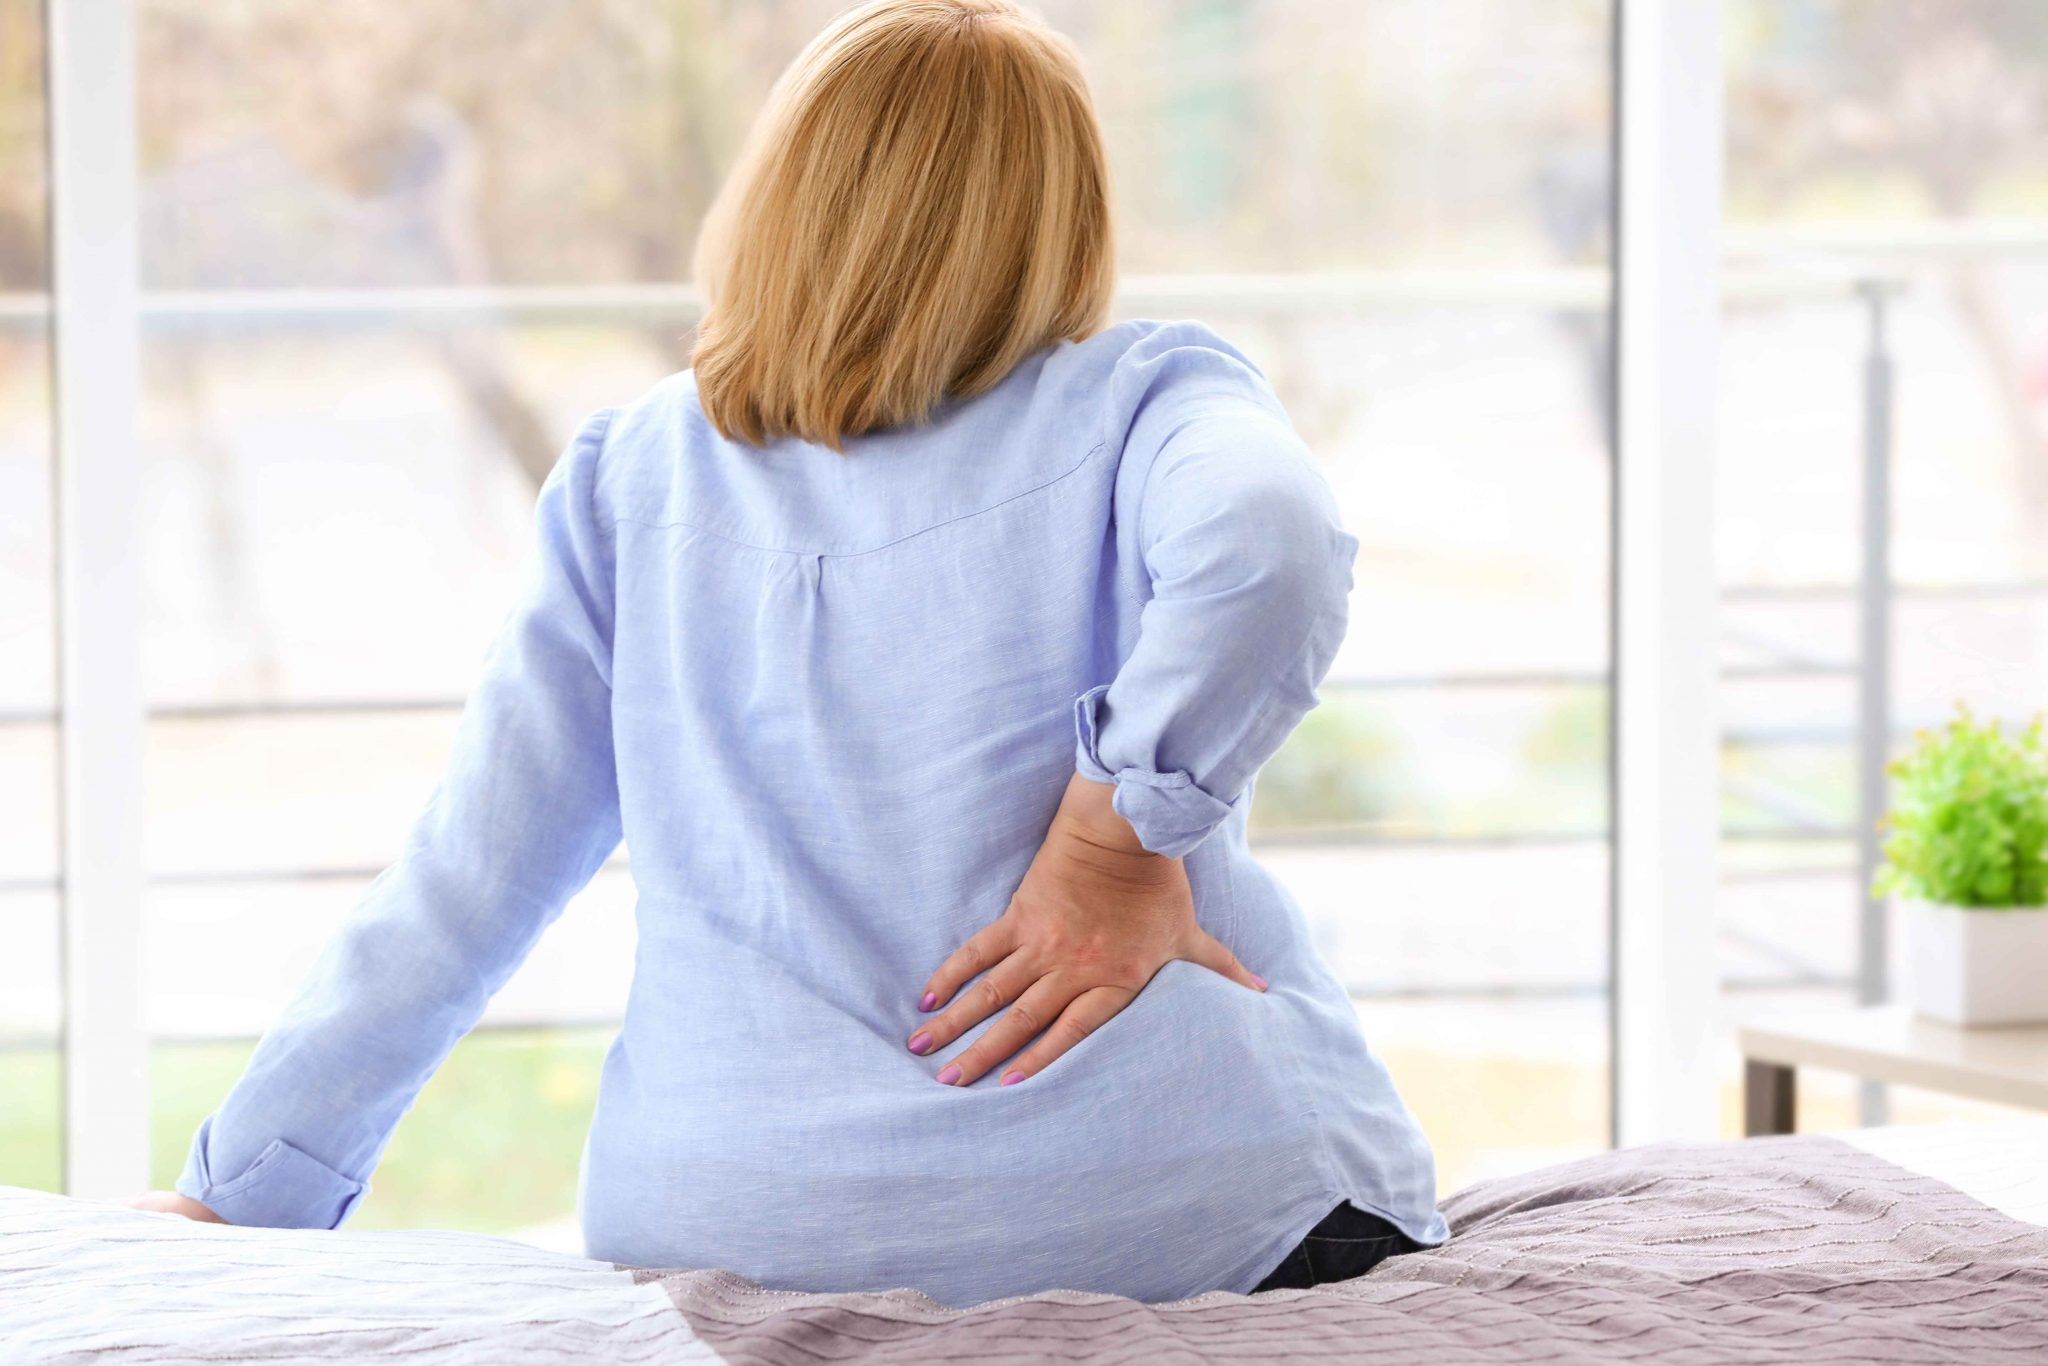 Breaking the back-pain-weight-gain cycle